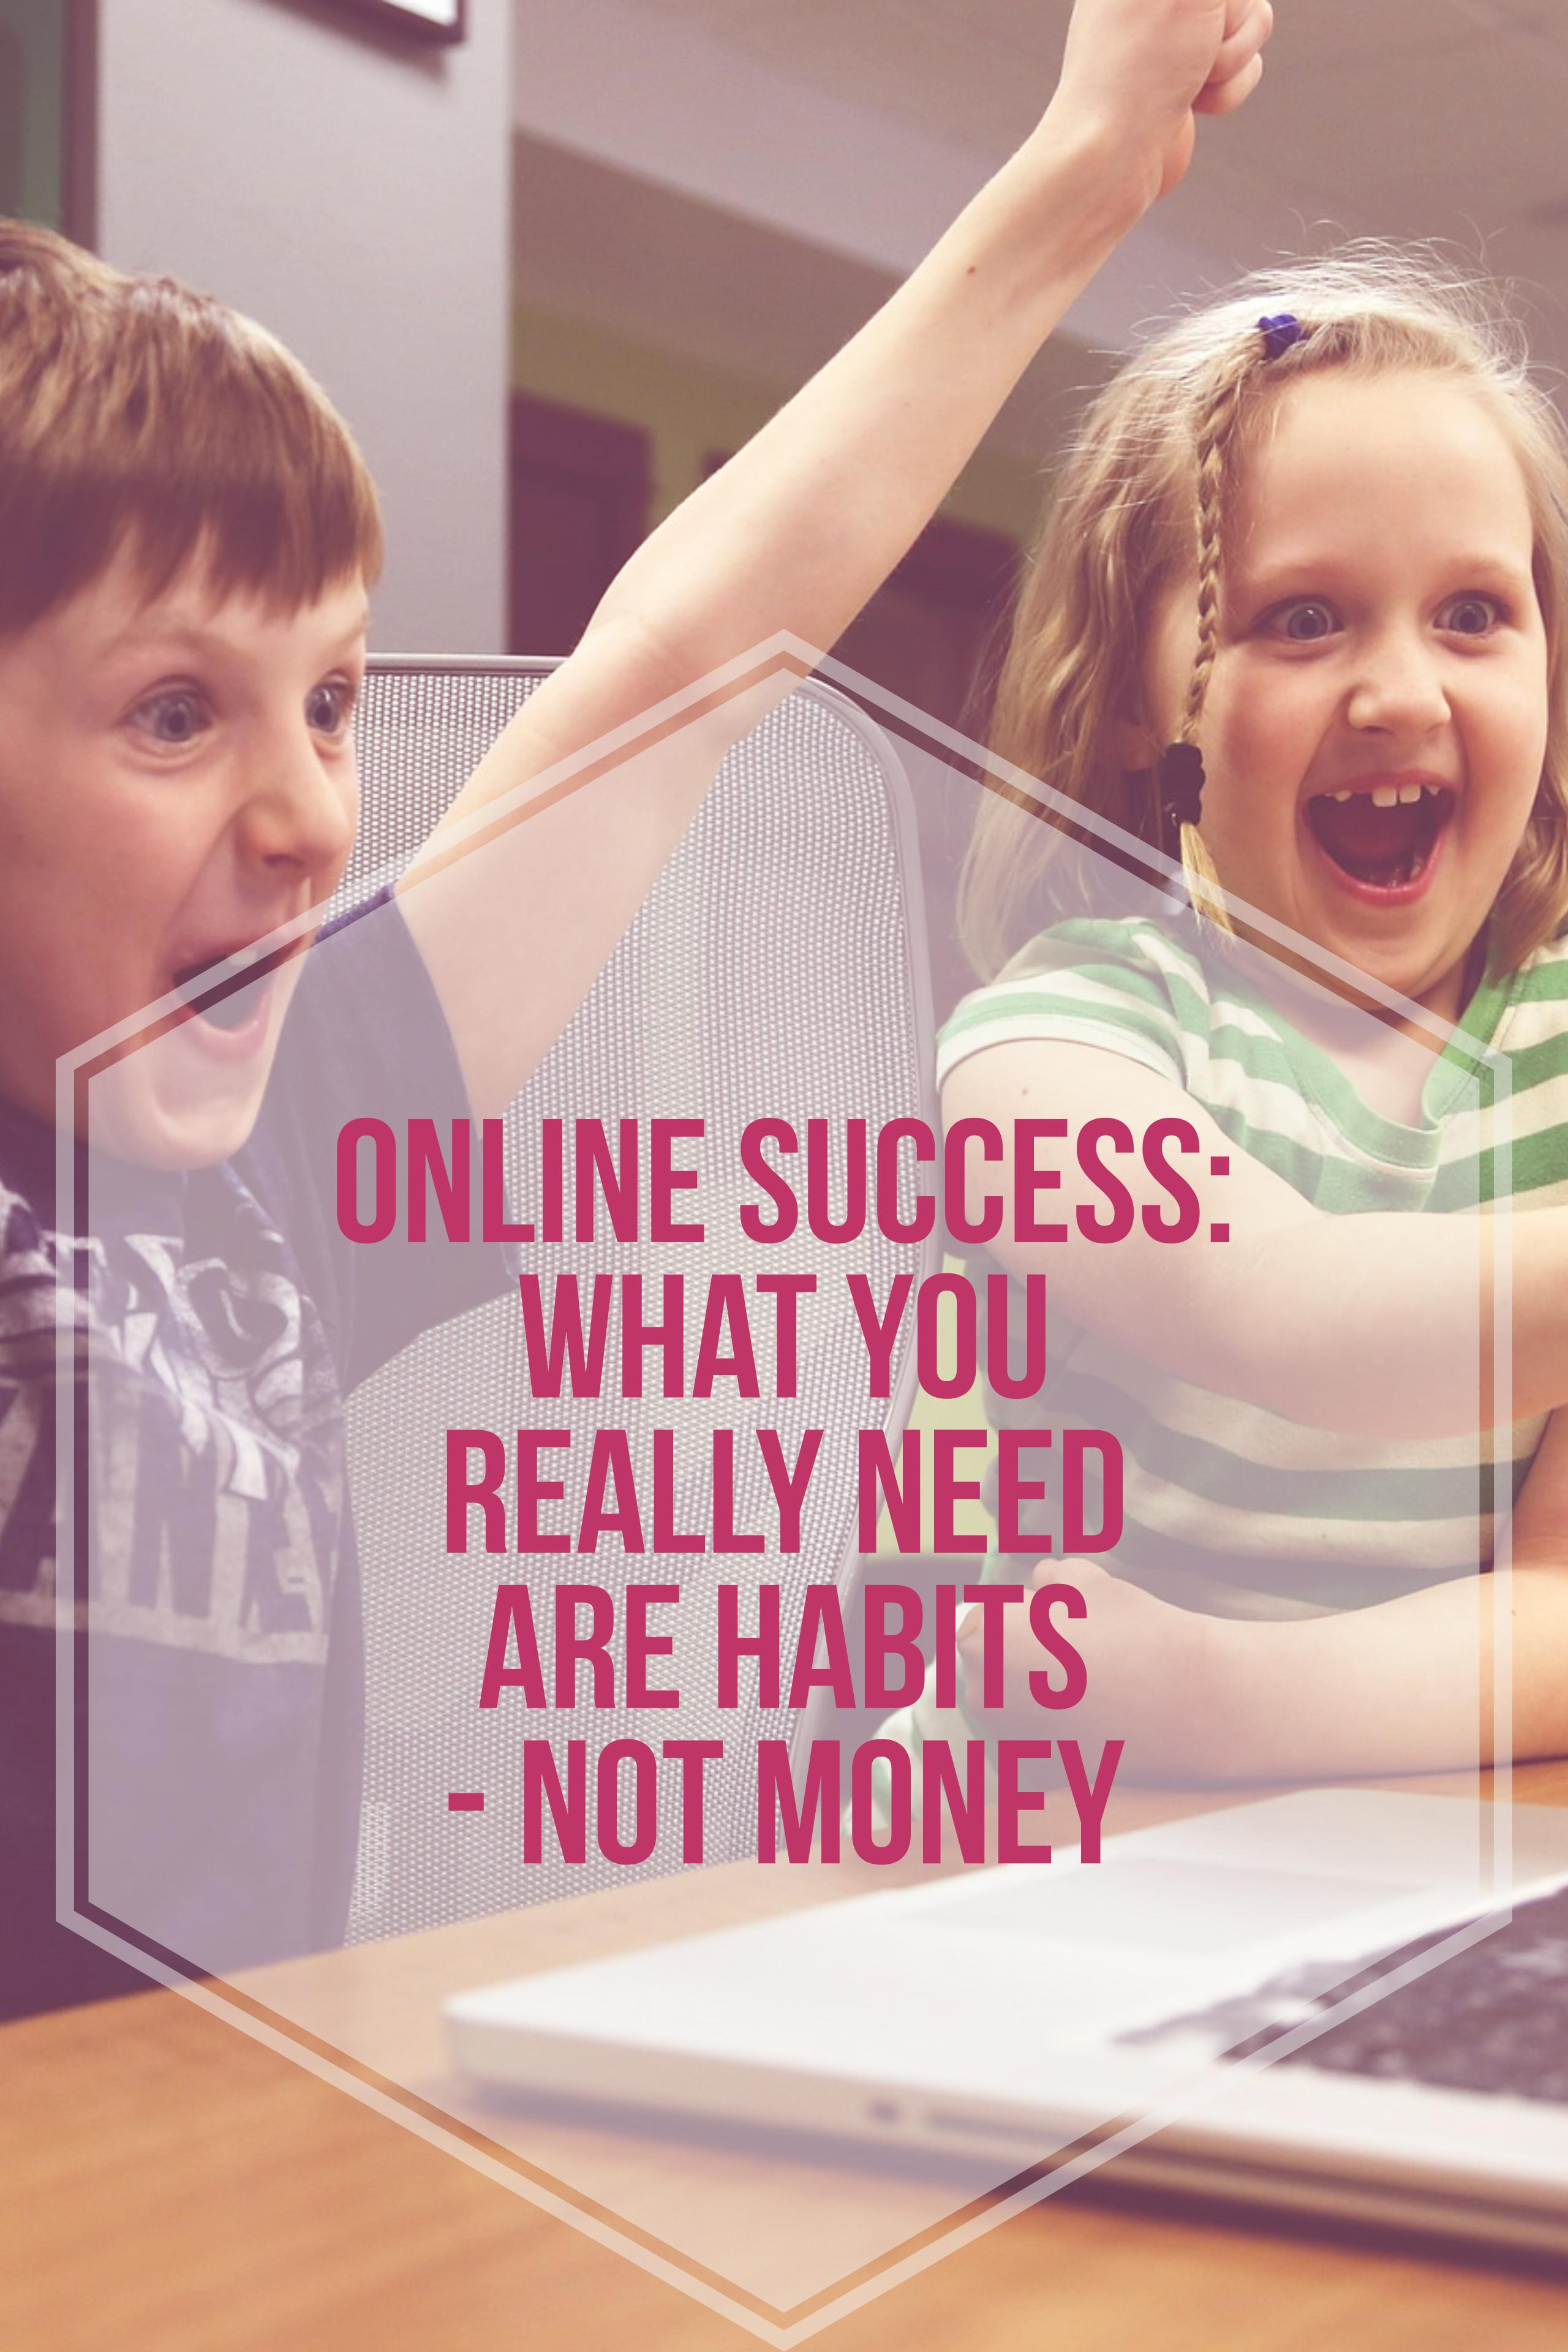 Striving for online success is like striving for fitness - you won't get fit without training regularly, and you won't succeed if you don't develop habits. Here is what you really need.